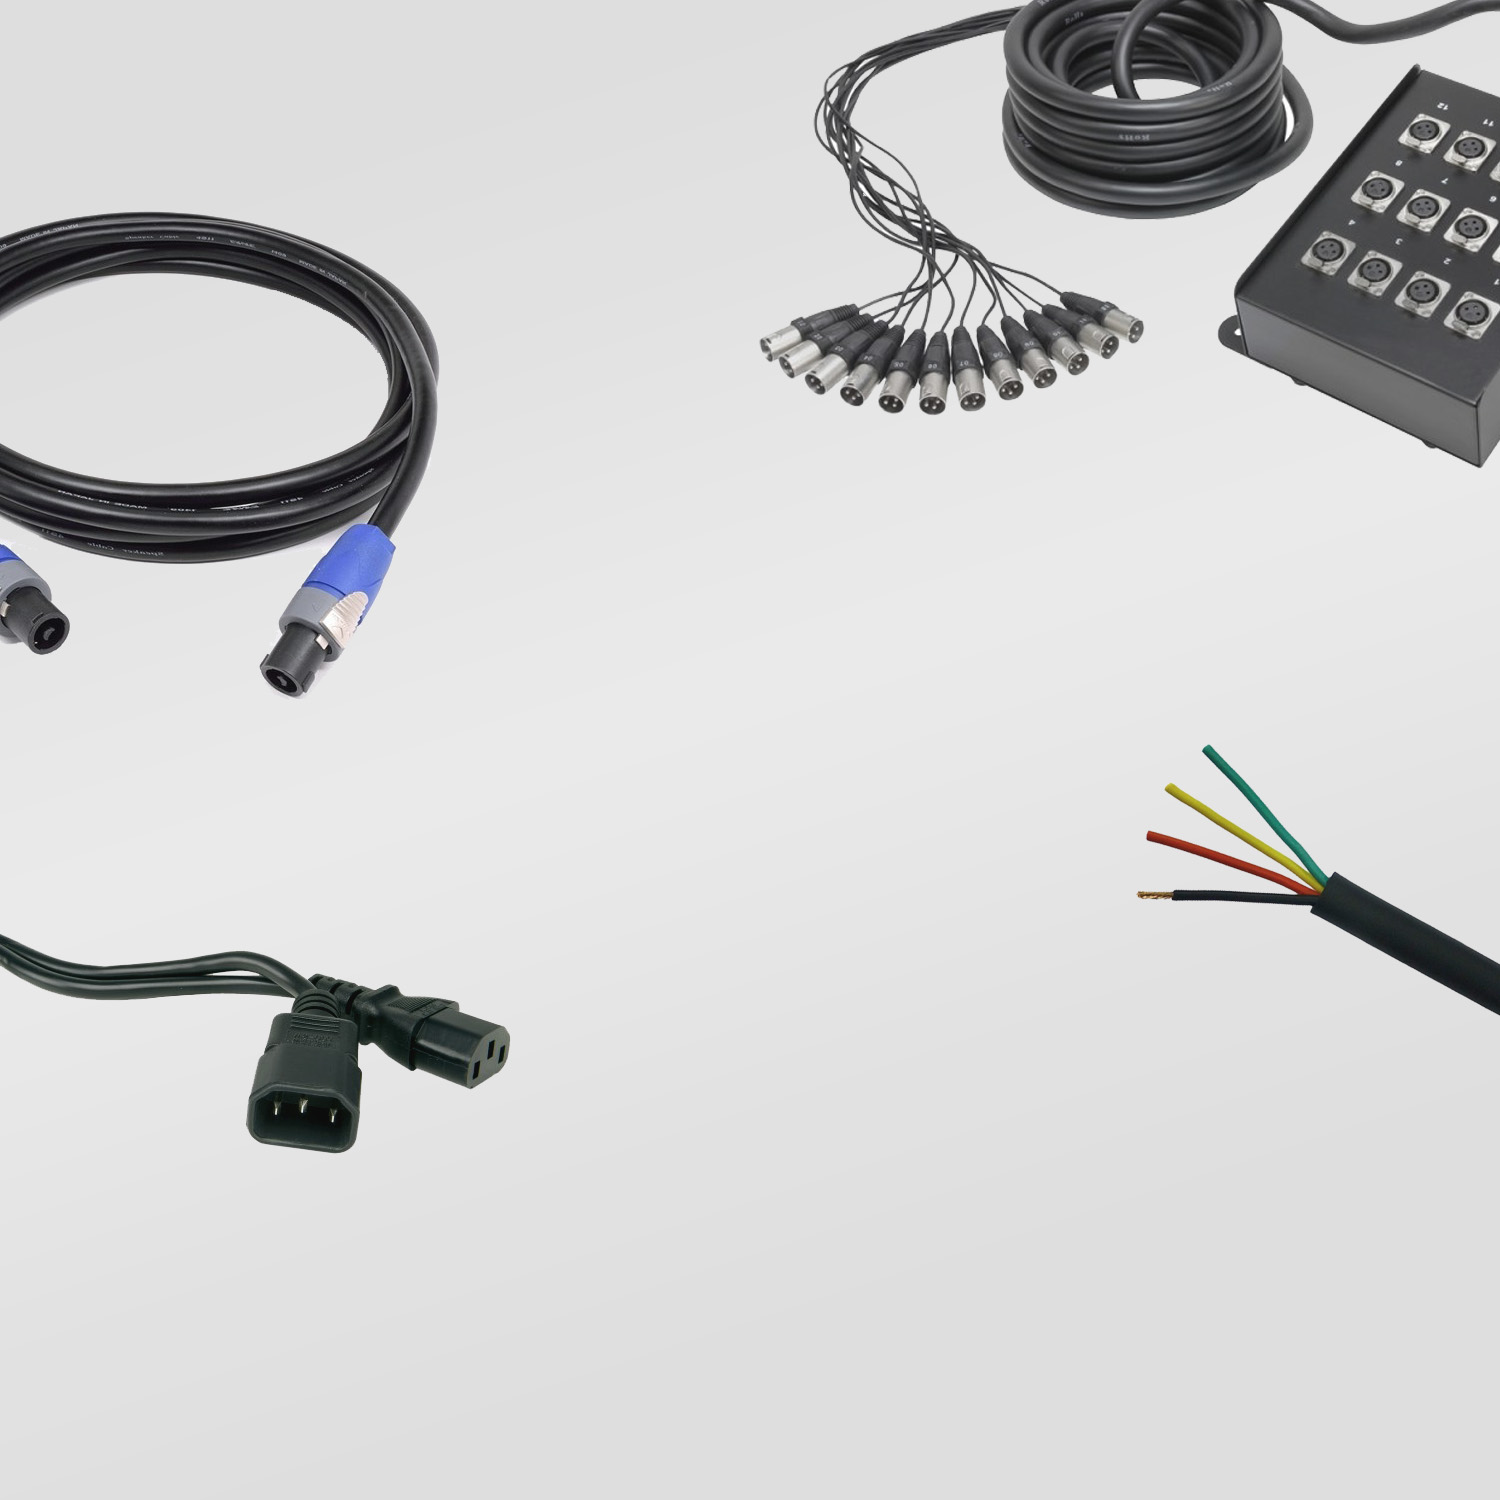 Blue Aran Professional Sound And Lighting Cables Connectors Wiring Input Output Jacks General Guitar Gadgets Cookies Our Website Uses In Order To Provide A Better Online Experience This Is Essential For Use Of The Shopping Basket We Require